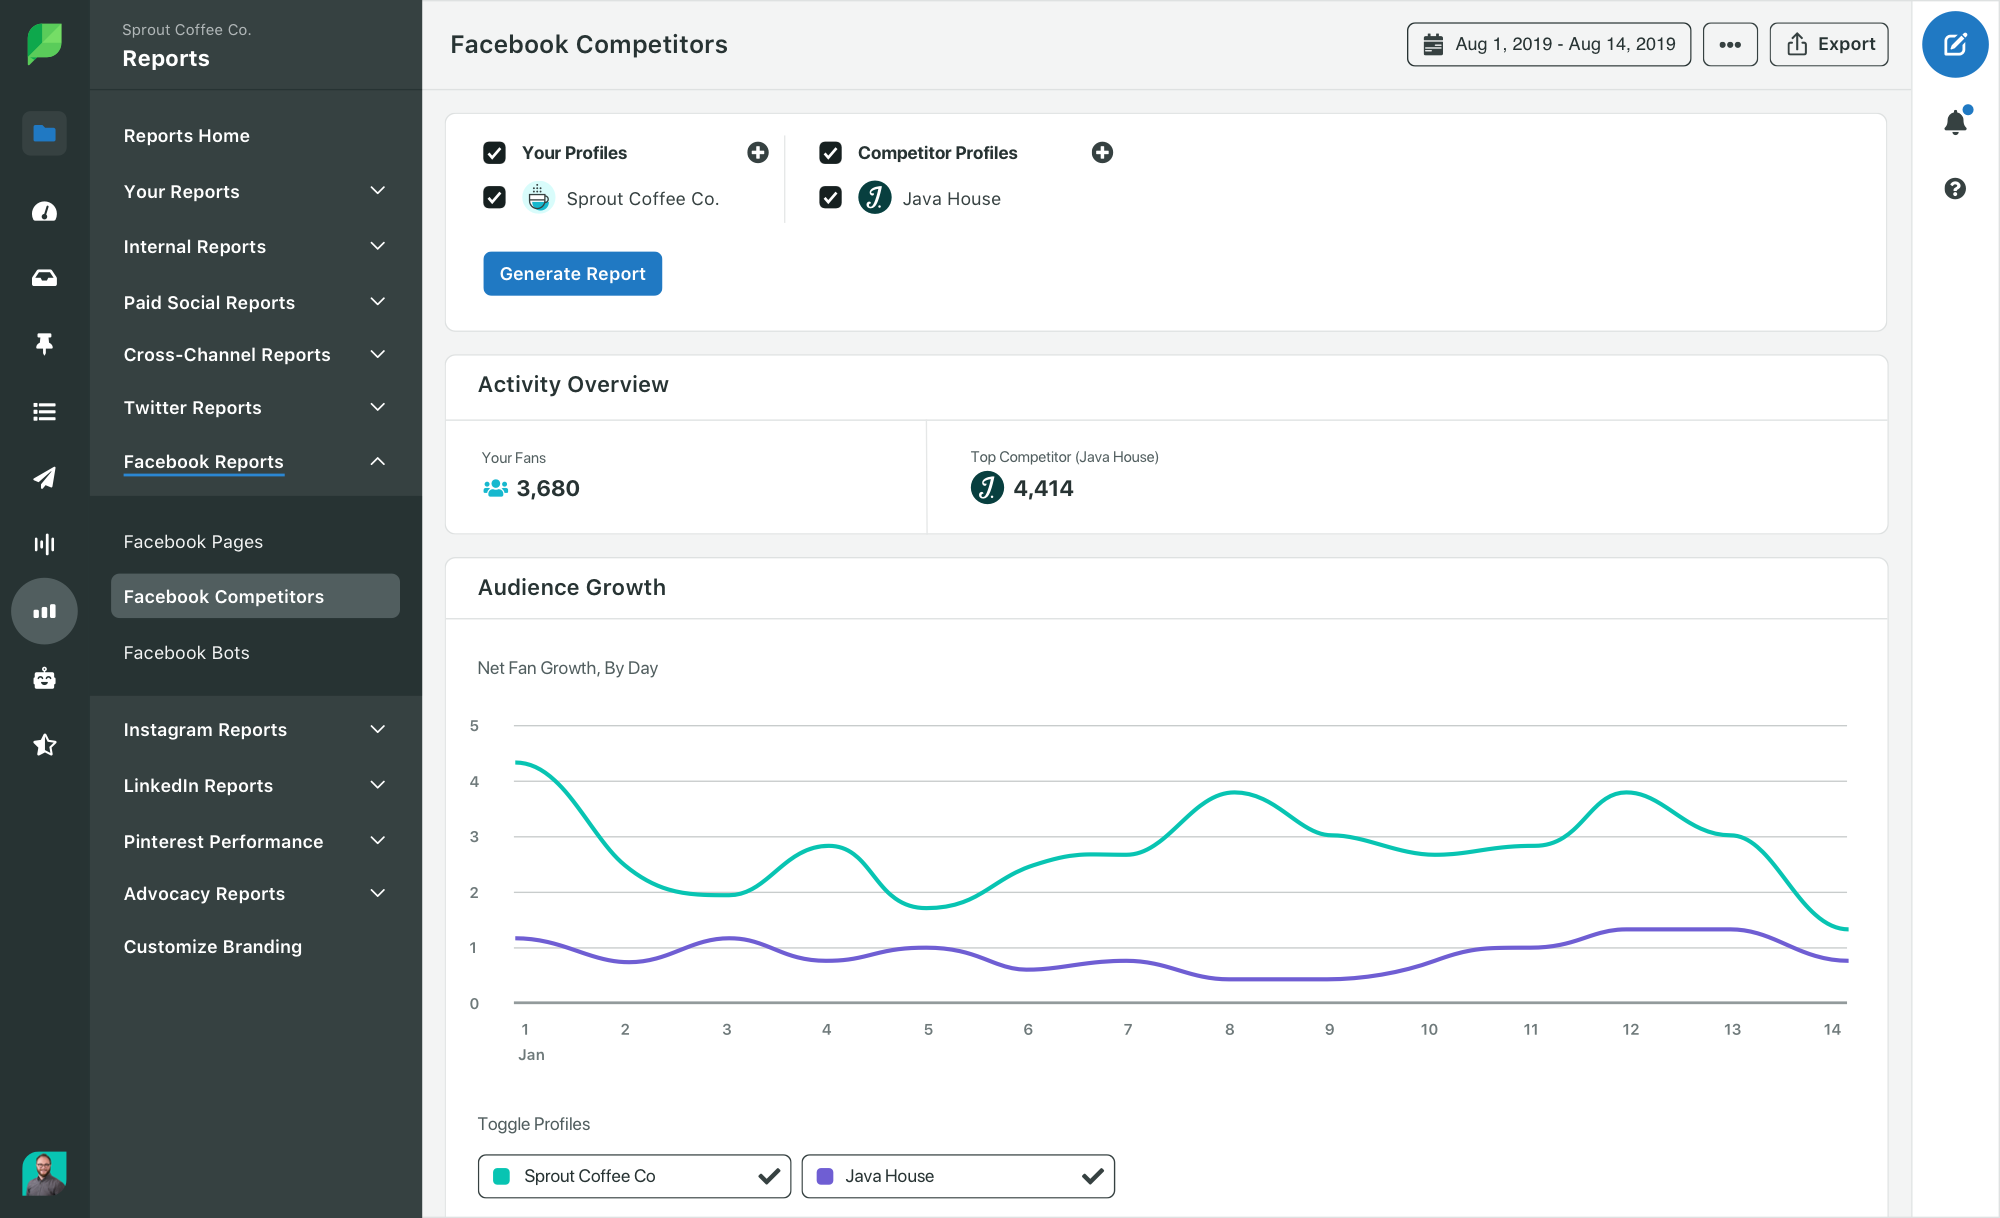 Sprout Facebook competitor report highlighting follower growth rate